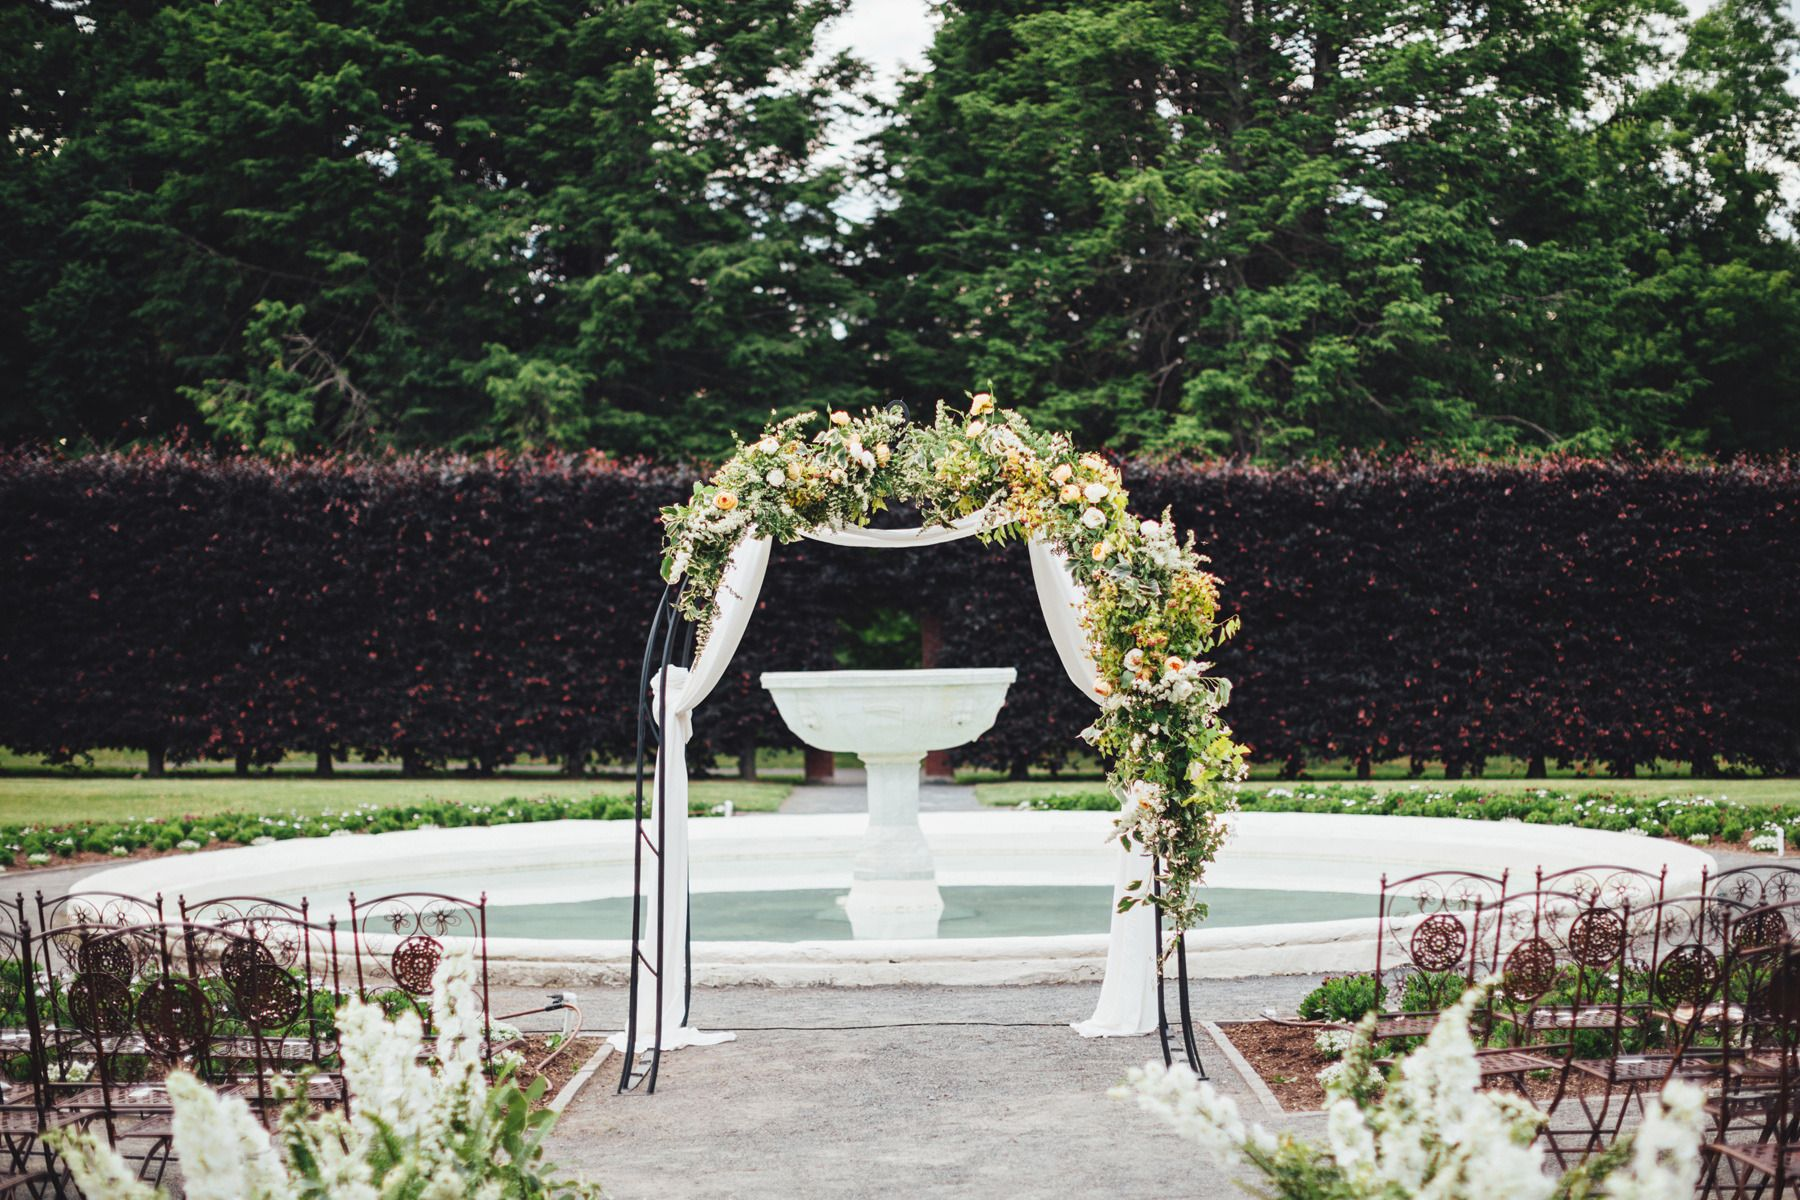 Outdoor garden wedding decoration ideas  Blogger Bride Colour Blocus Elegant Garden Wedding  Wedding